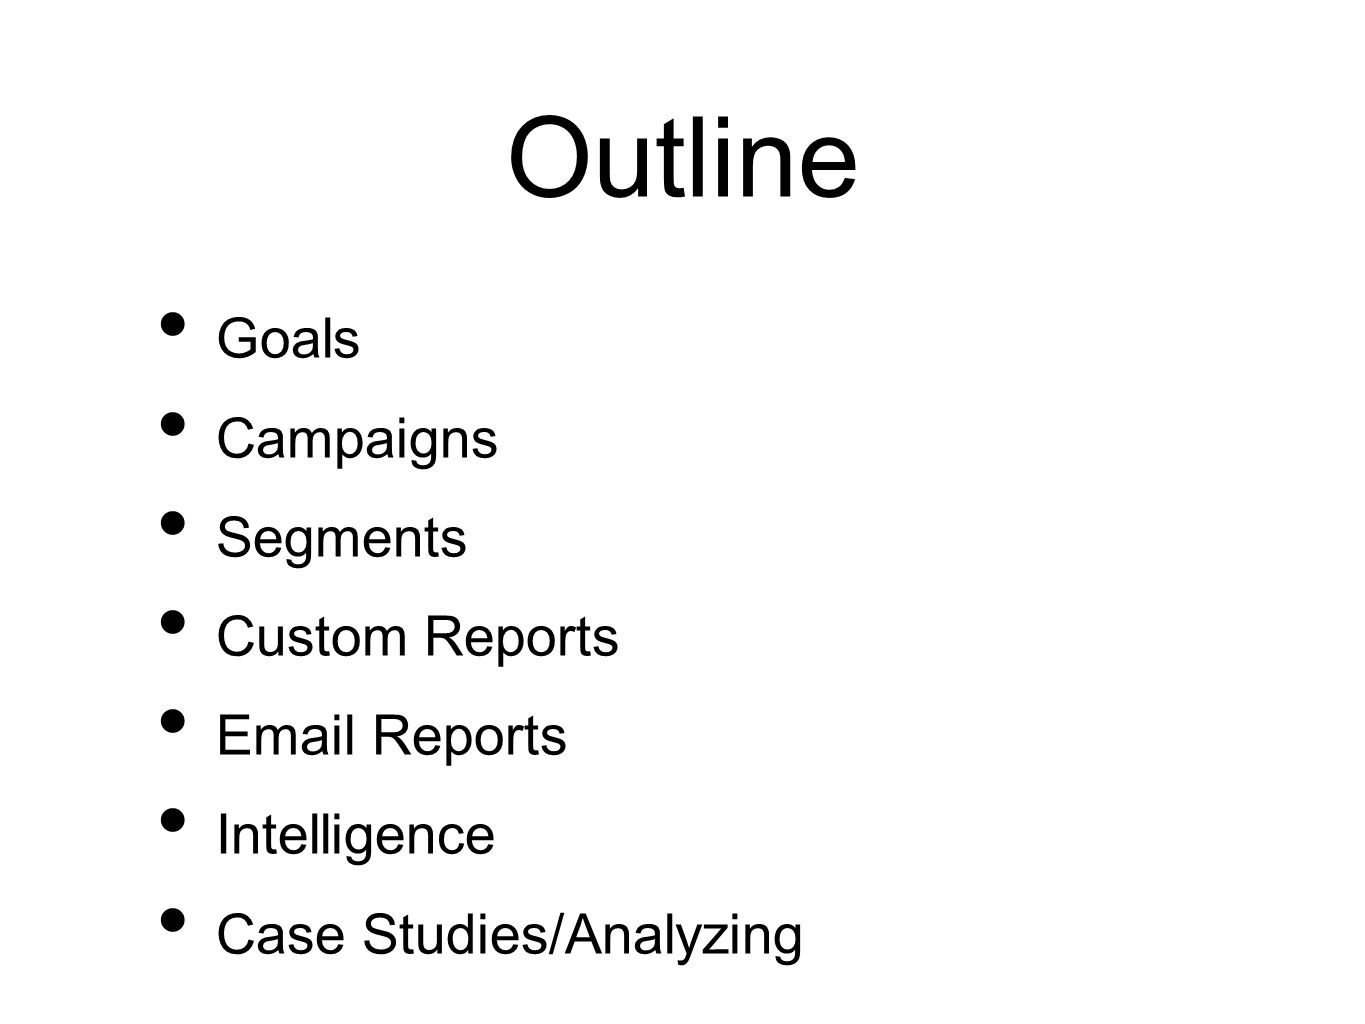 Outline Goals Campaigns Segments Custom Reports Email Reports Intelligence Case Studies/Analyzing